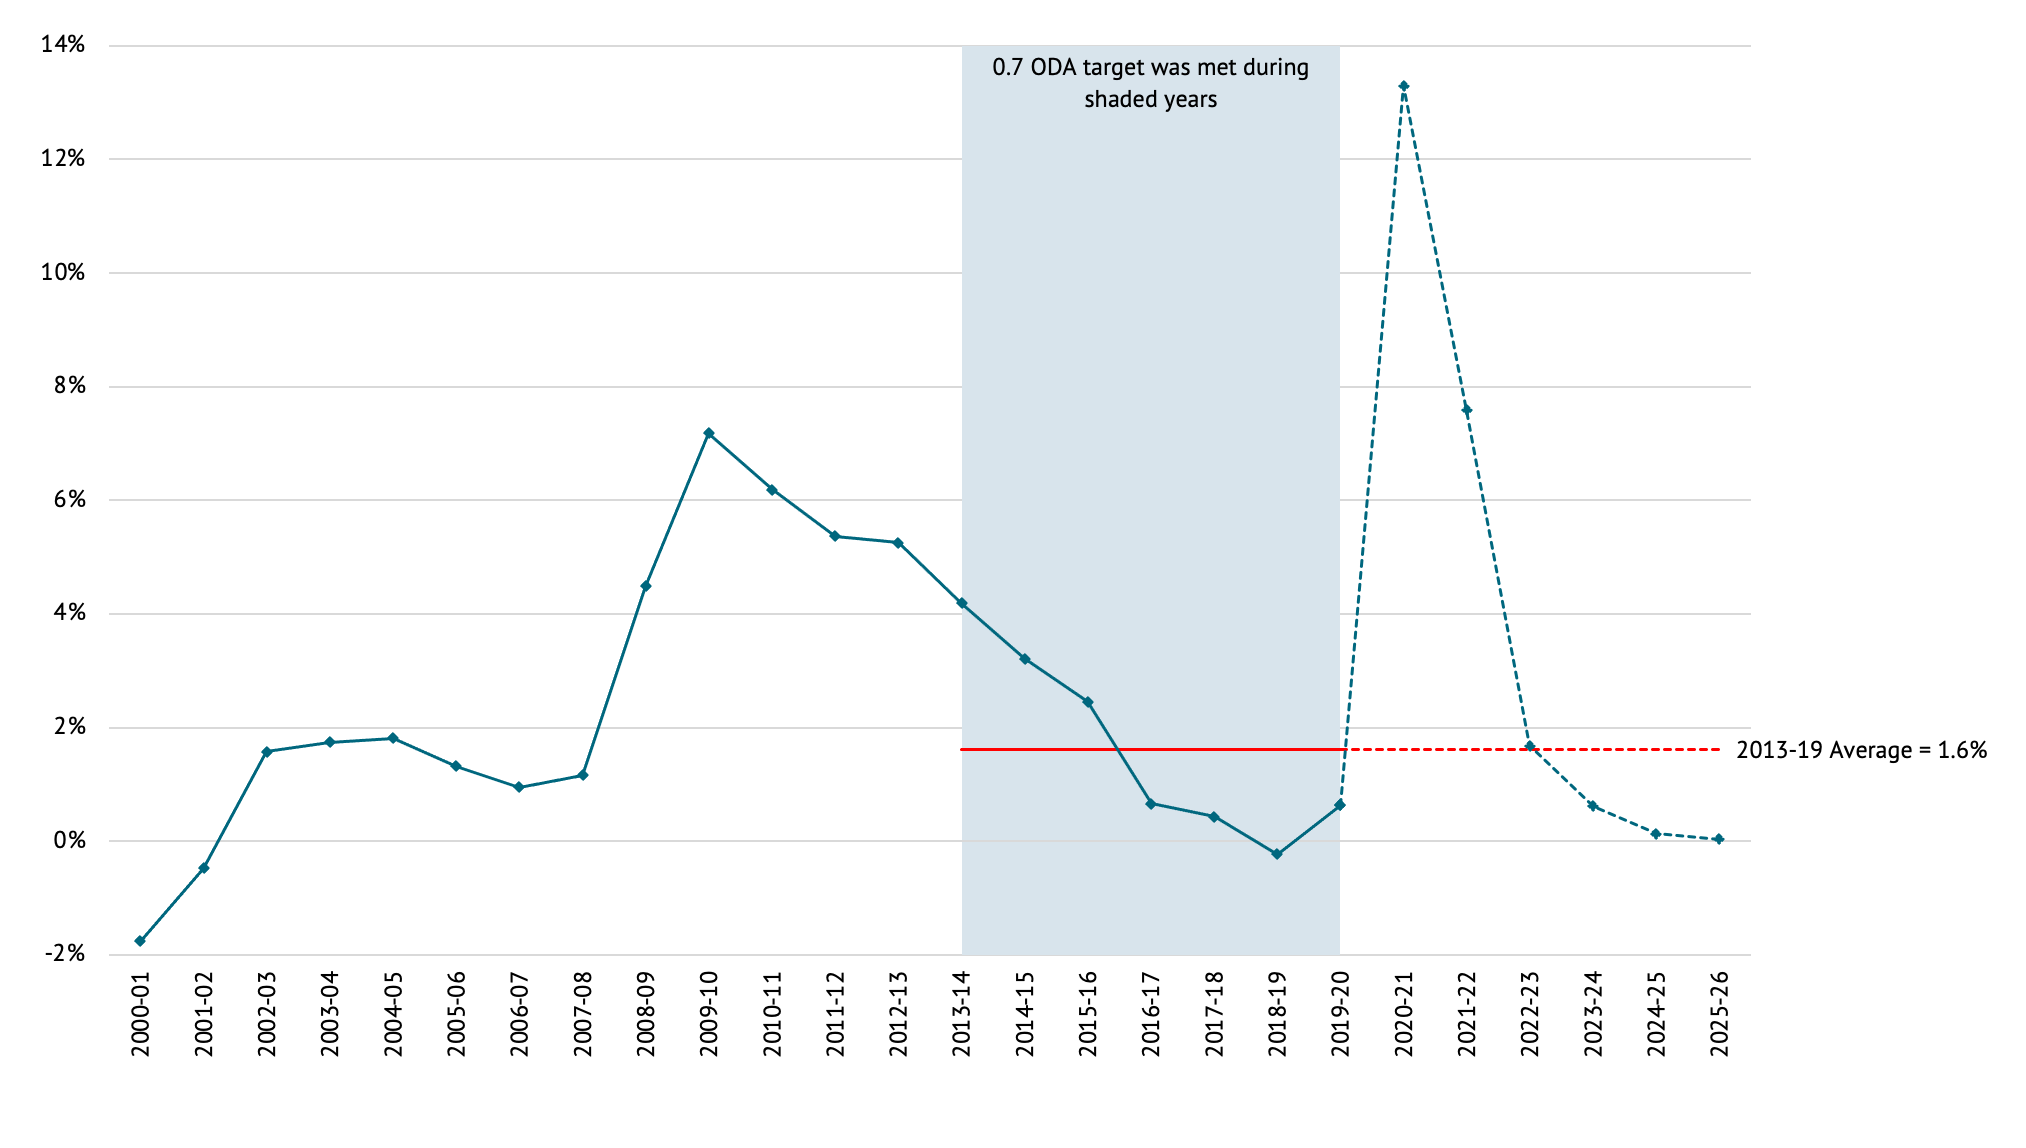 A figure showing UK current budget deficit (percent GDP) and the aid target.